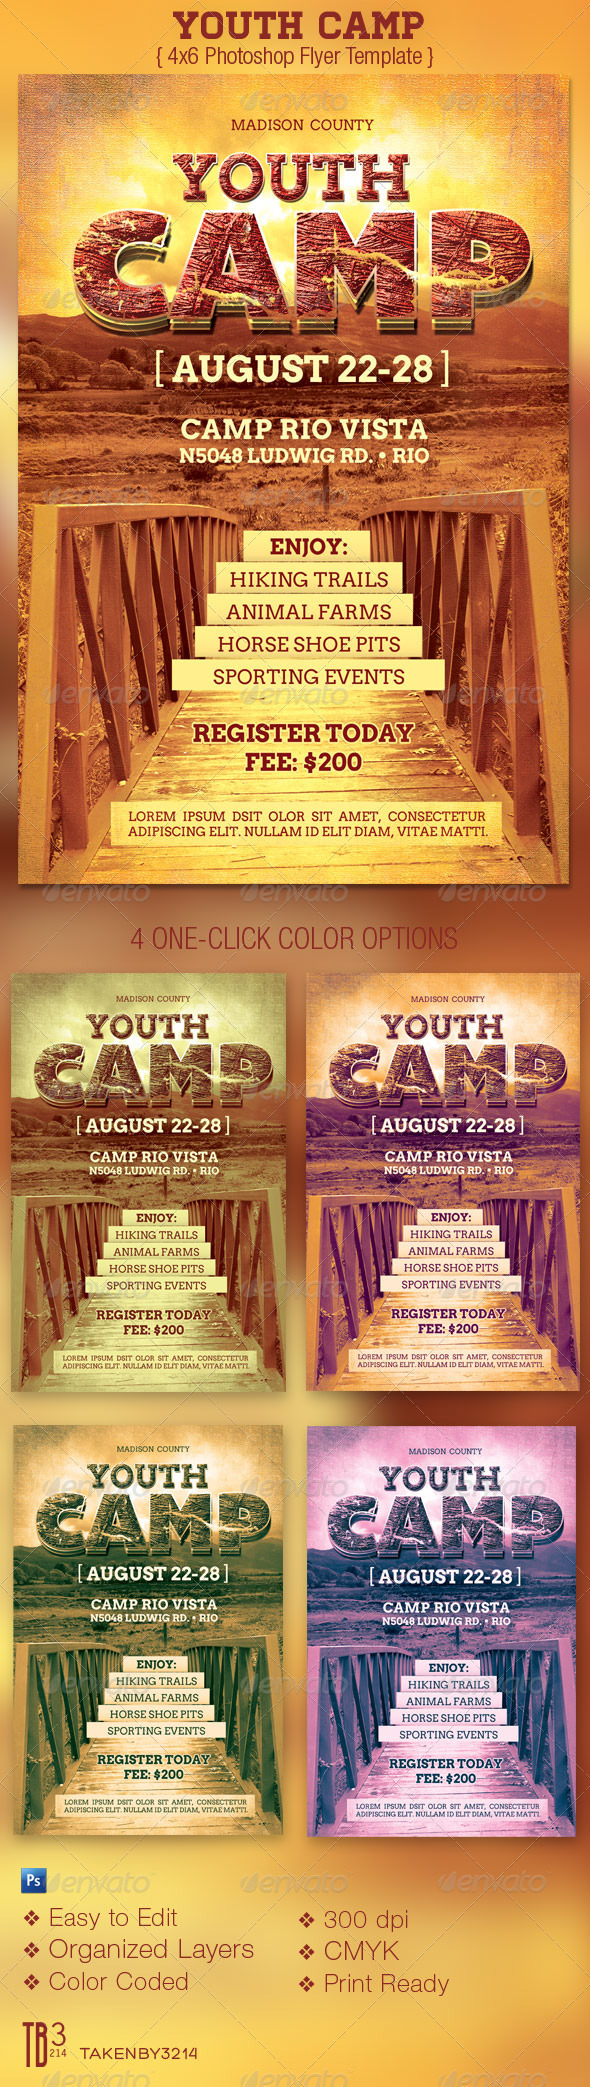 Youth Camp Flyer Template - Church Flyers